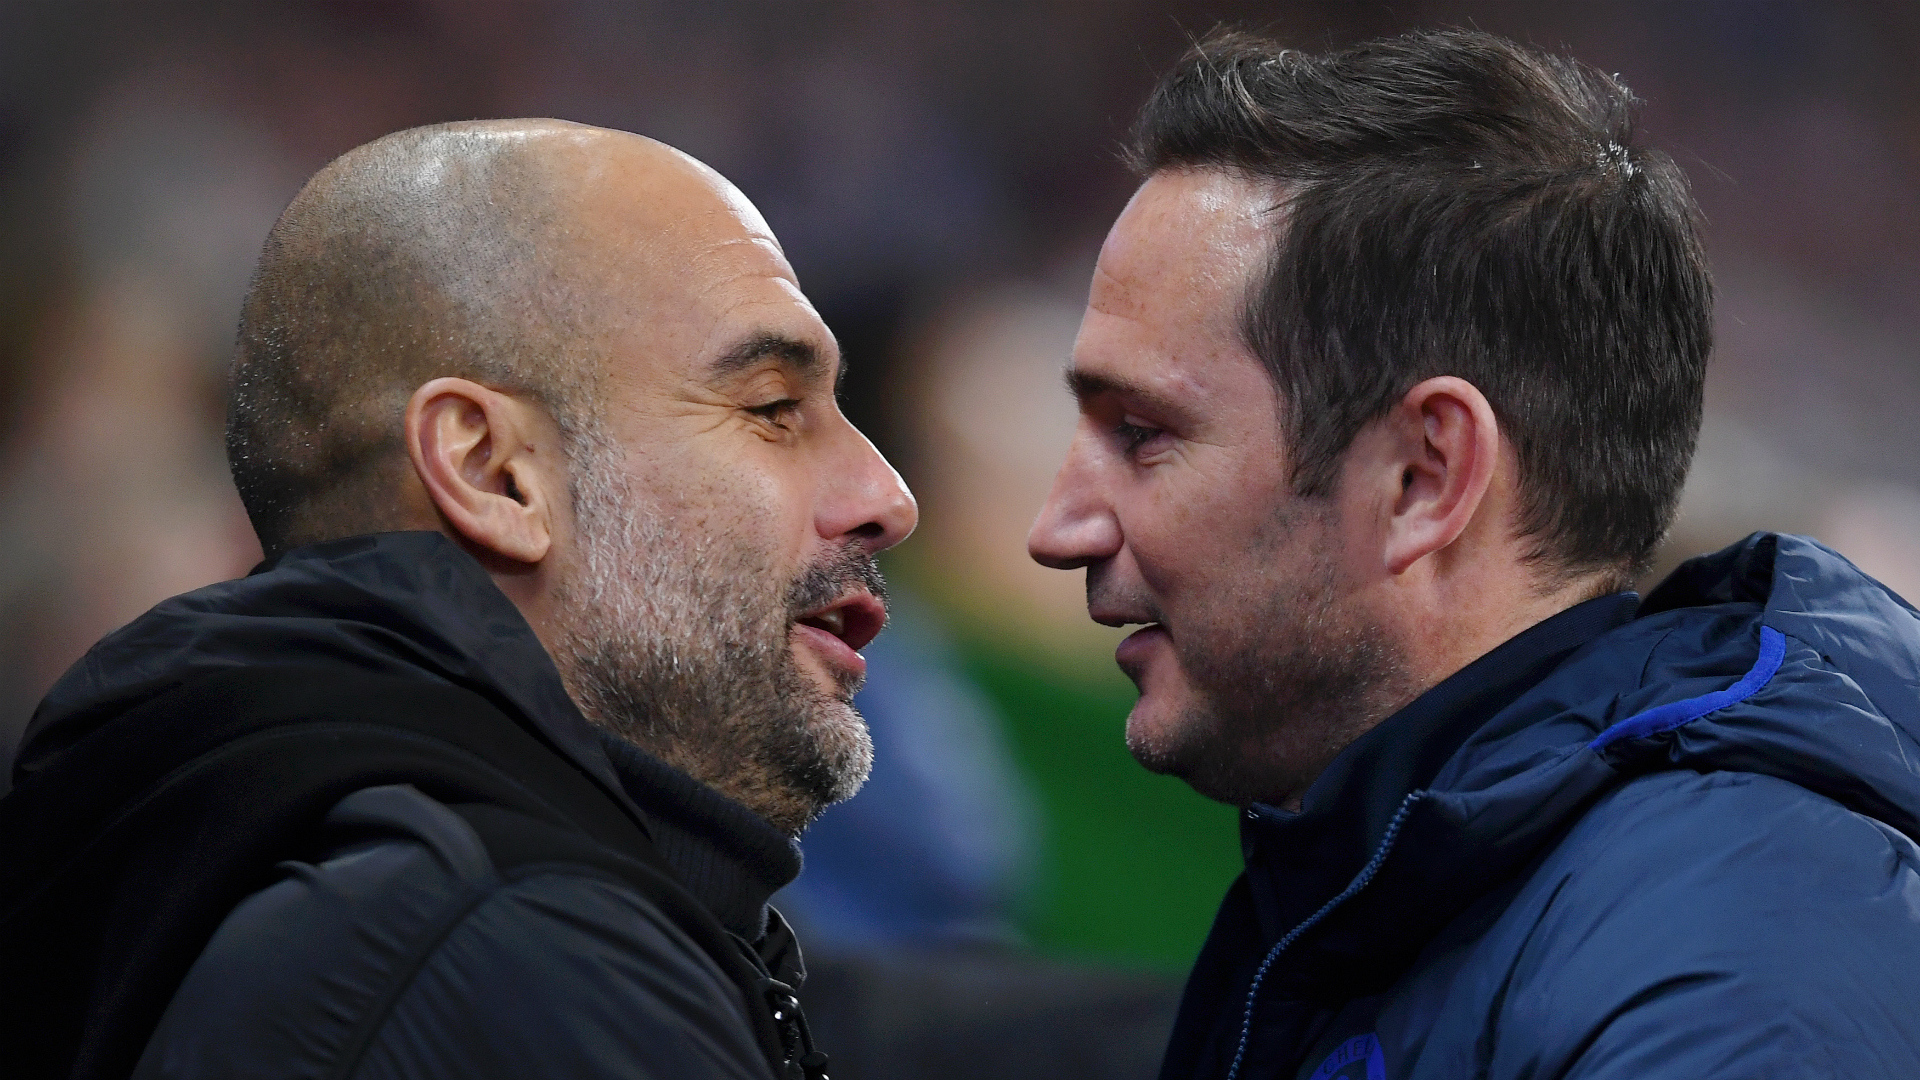 'You have to win' - Guardiola says all managers fear sack after Chelsea dismiss Lampard